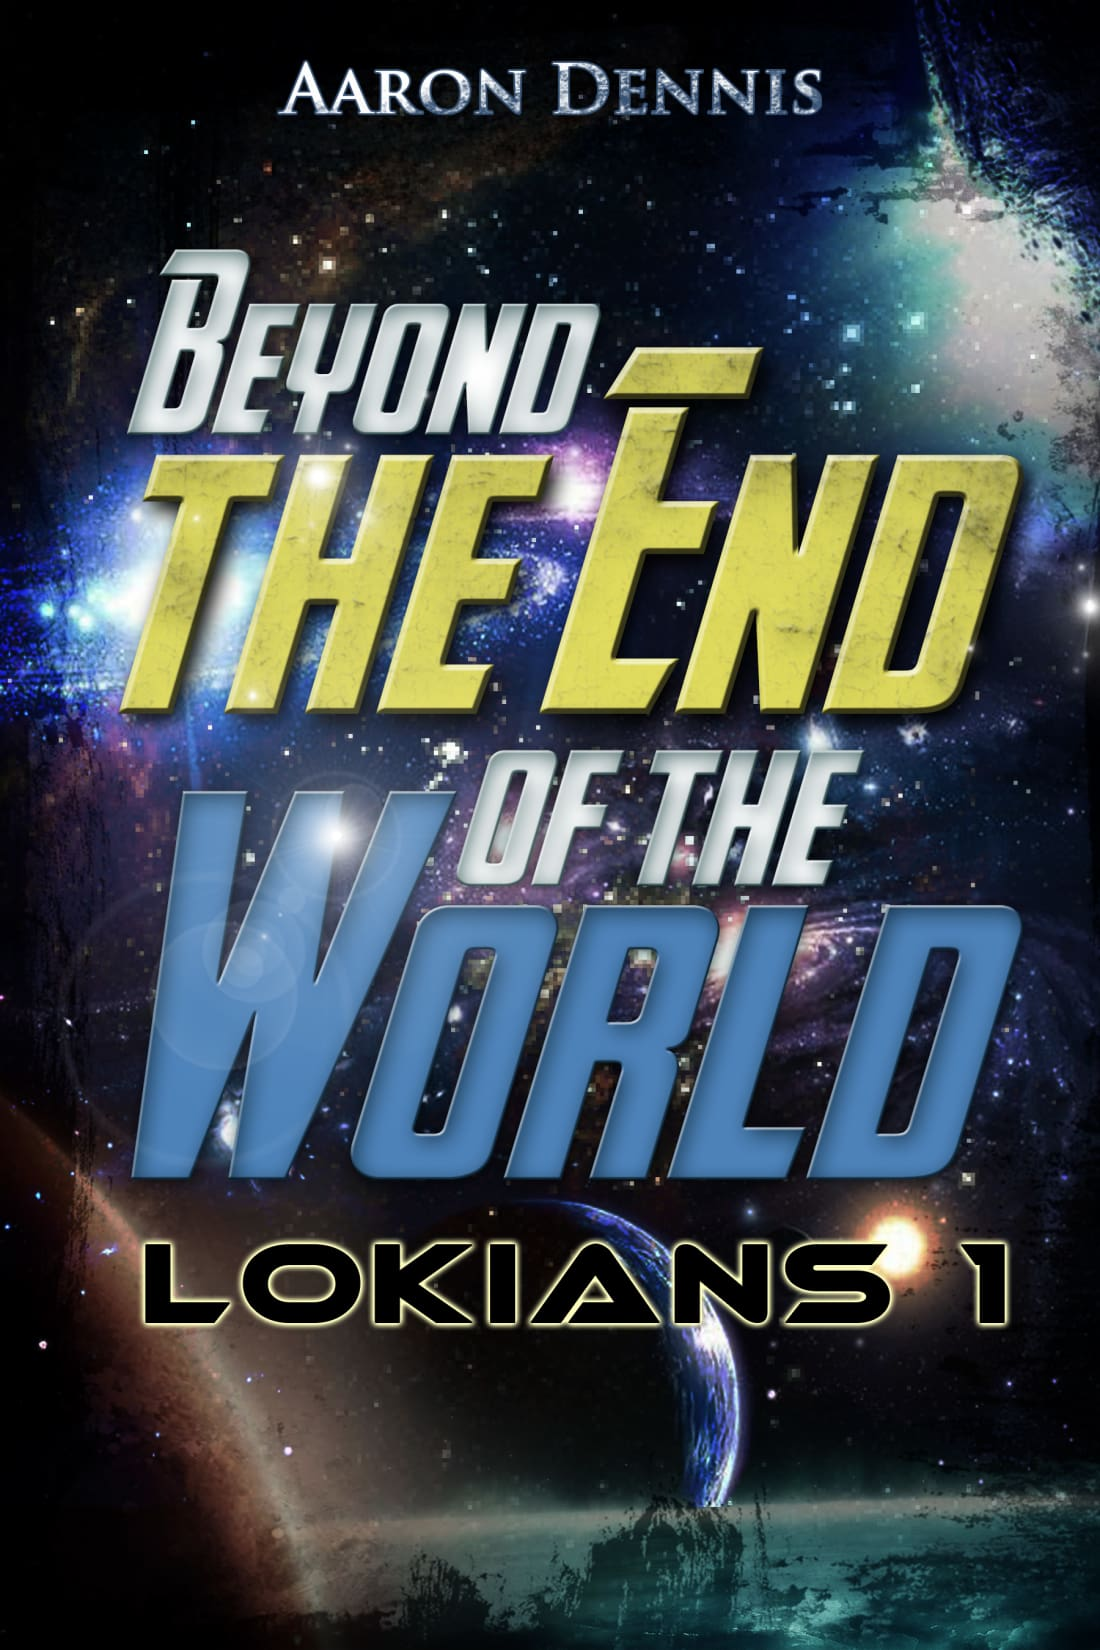 Part 2 of Beyond the End of the World, Lokians 1